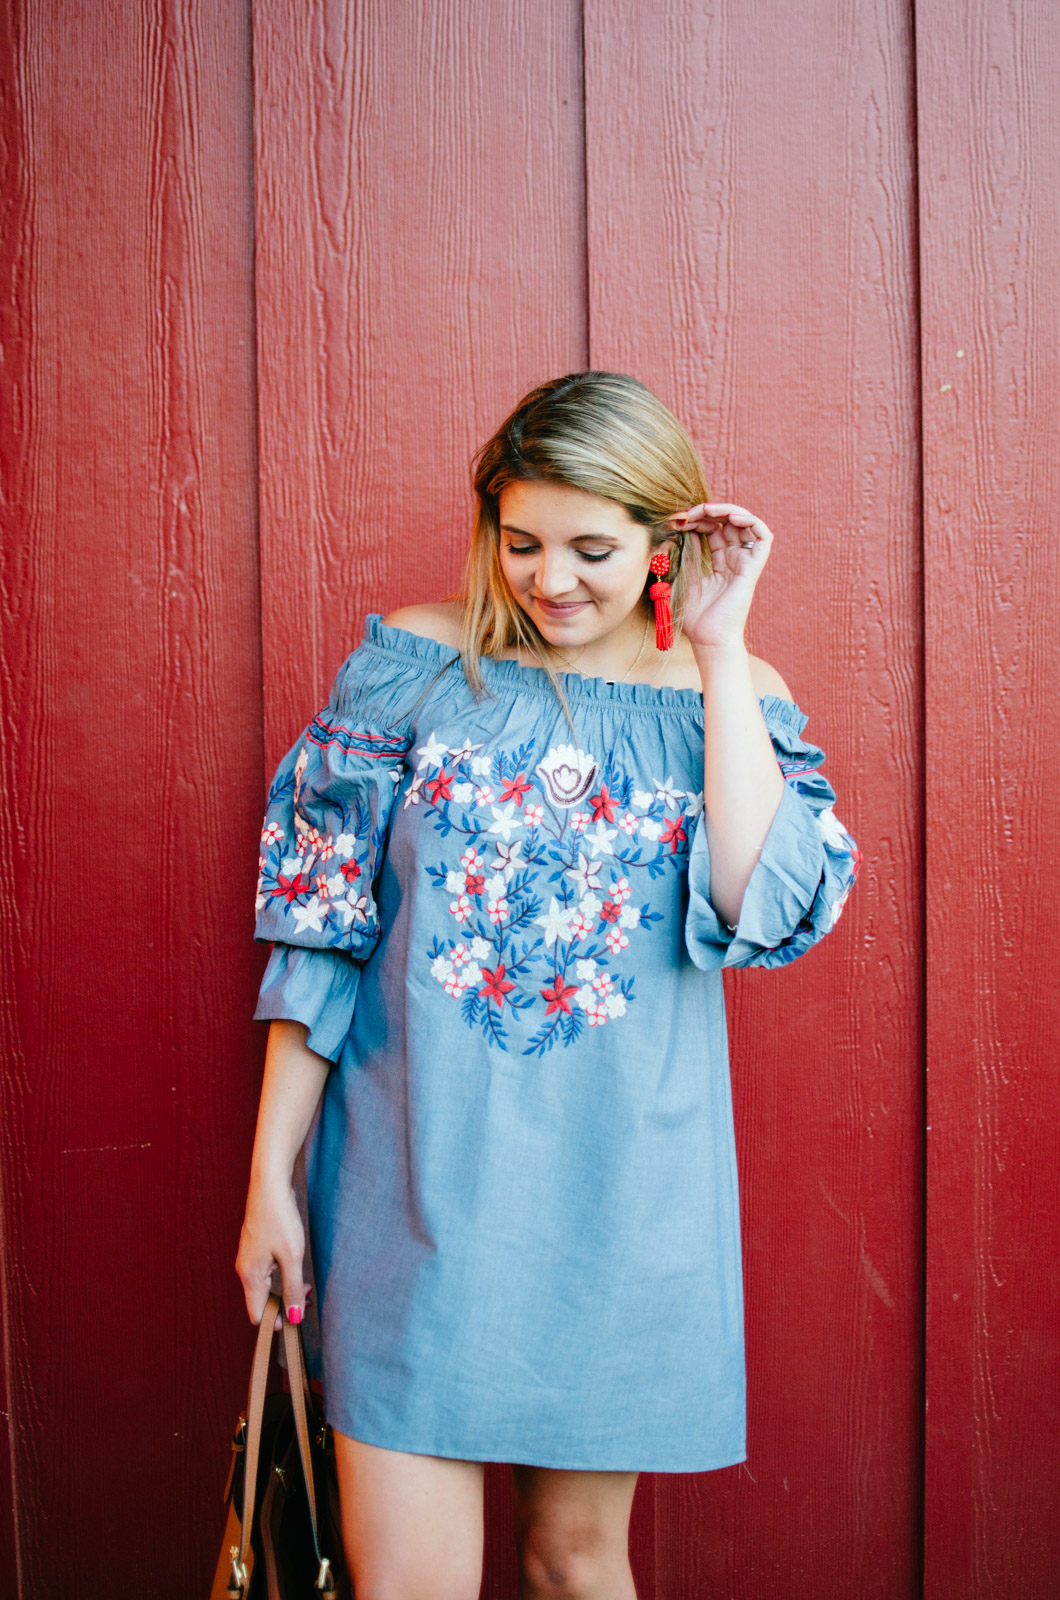 off shoulder chambray dress outfit idea | For more cute casual outfit ideas, head to bylaurenm.com!